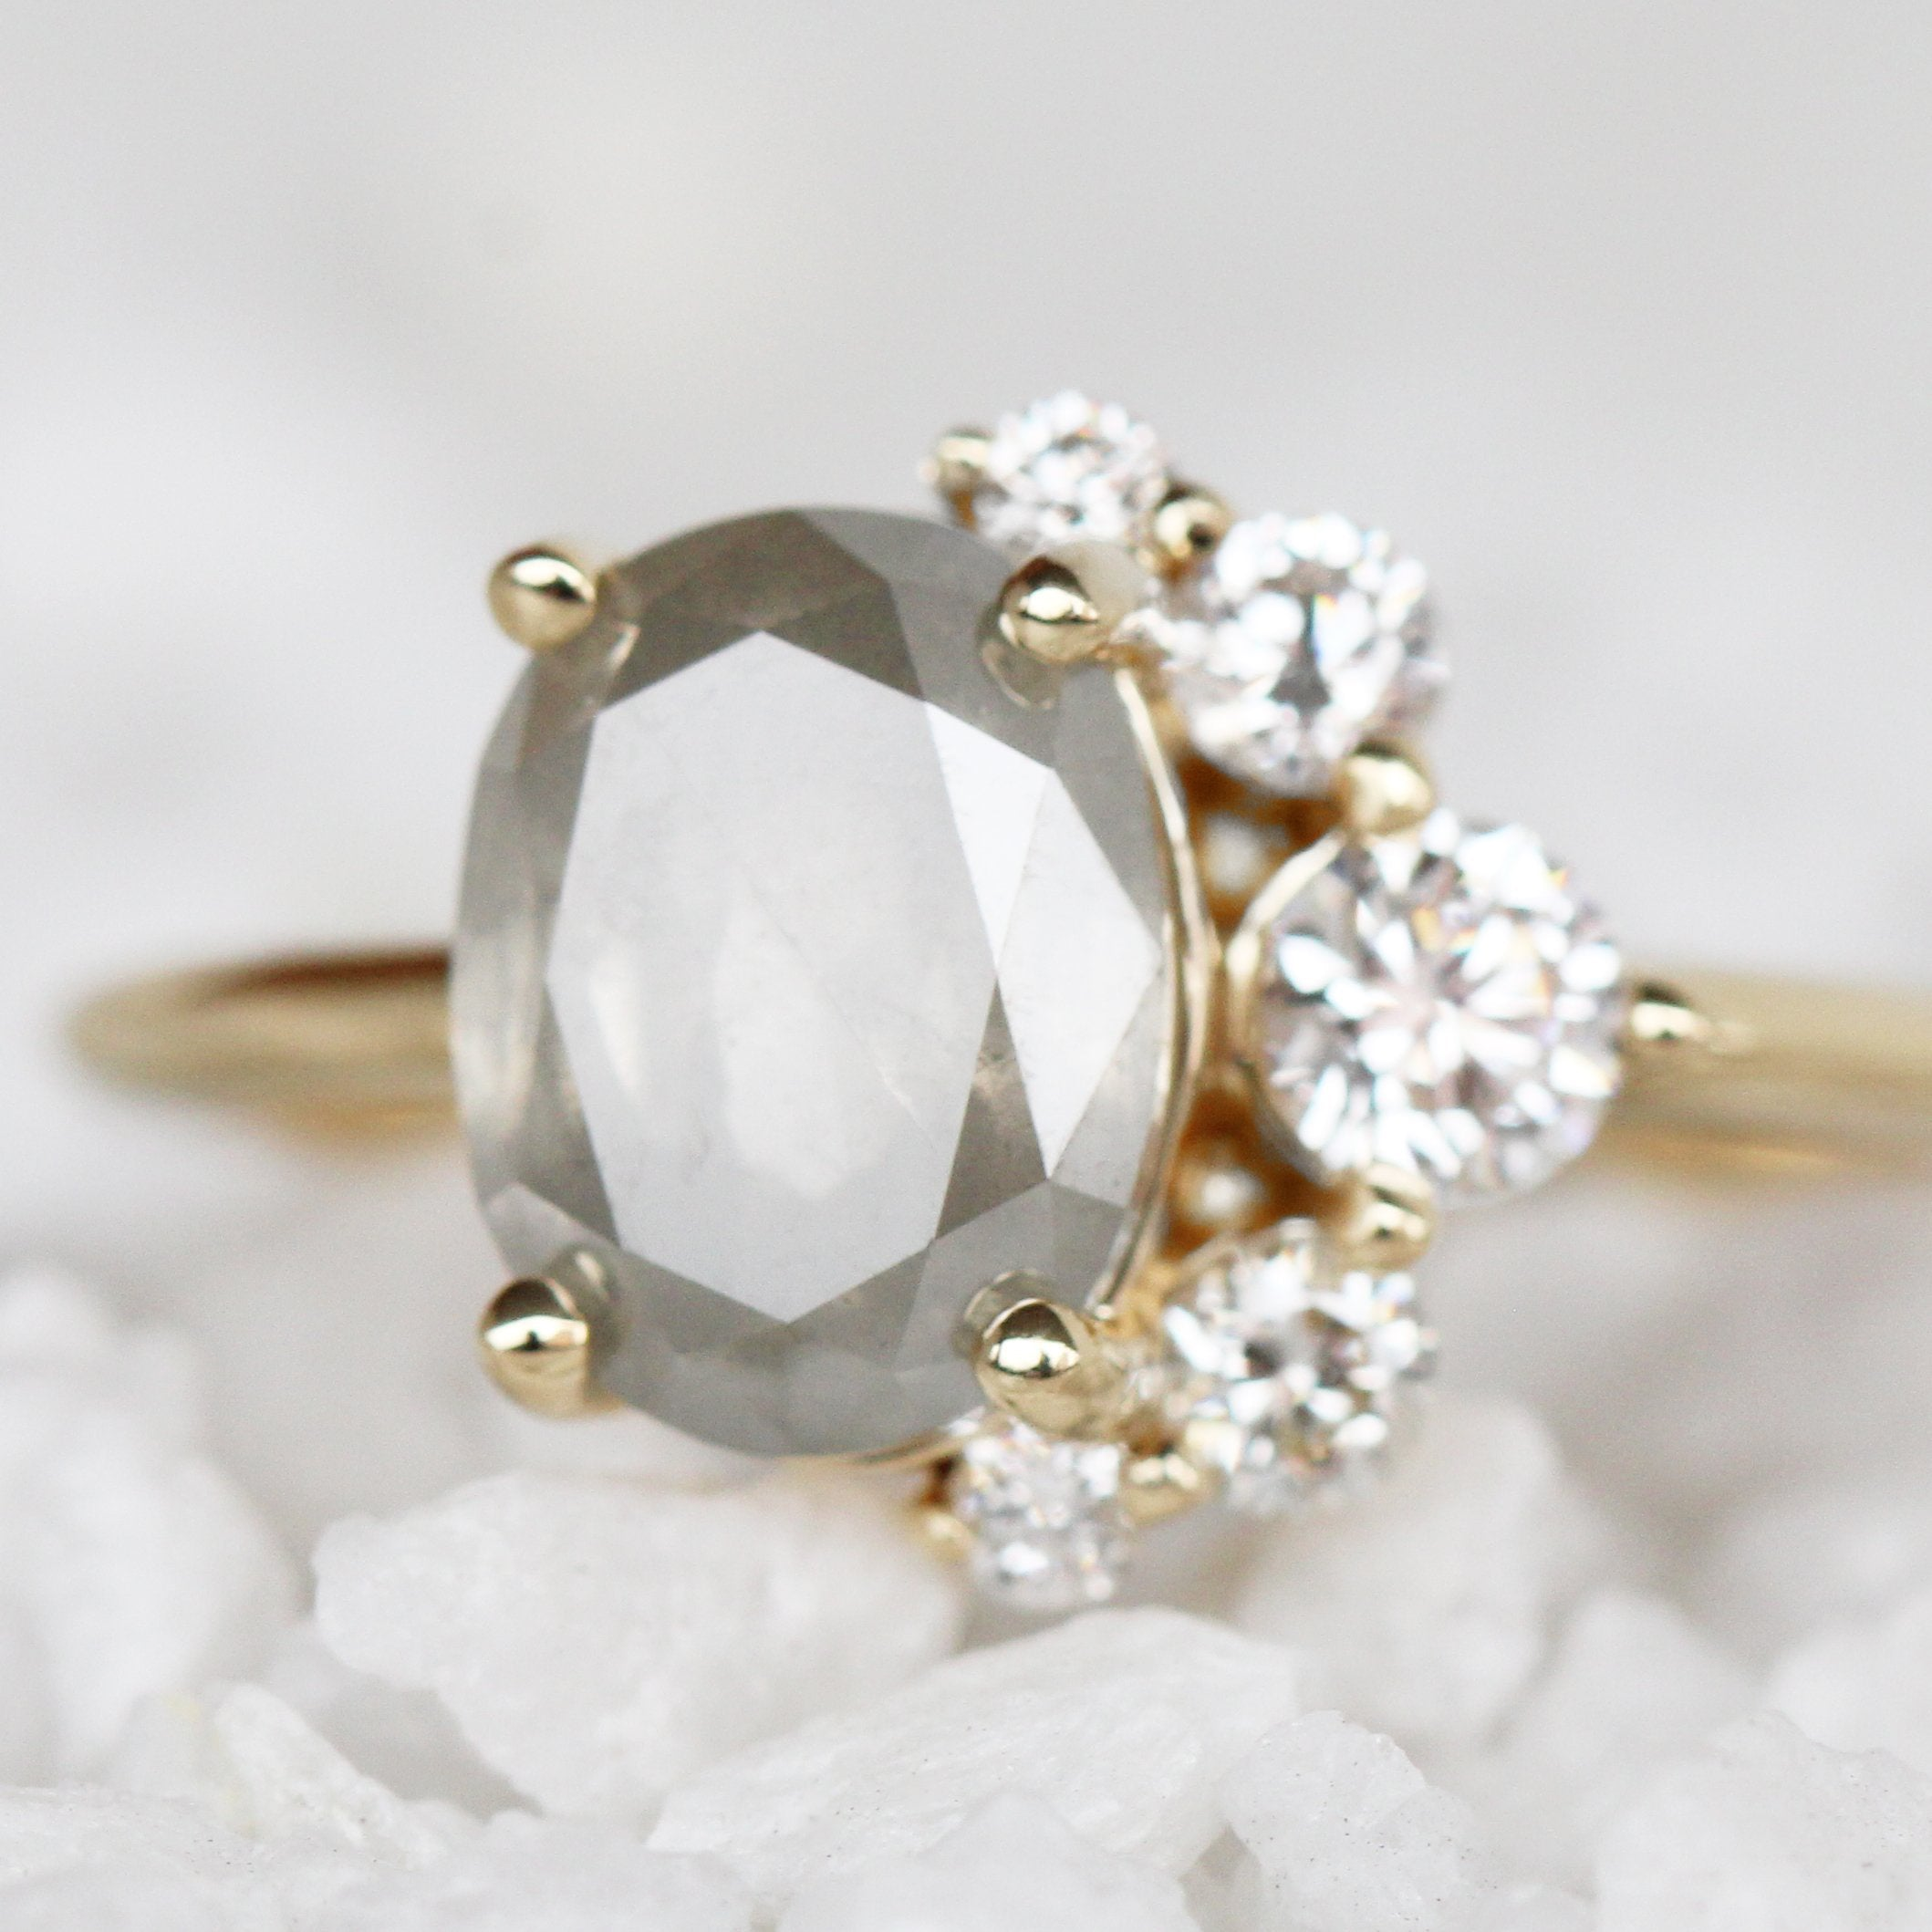 Carell Ring with a 2.35 Carat Oval Celestial Diamond in 14k Yellow Gold - Ready to Size and Ship - Midwinter Co. Alternative Bridal Rings and Modern Fine Jewelry